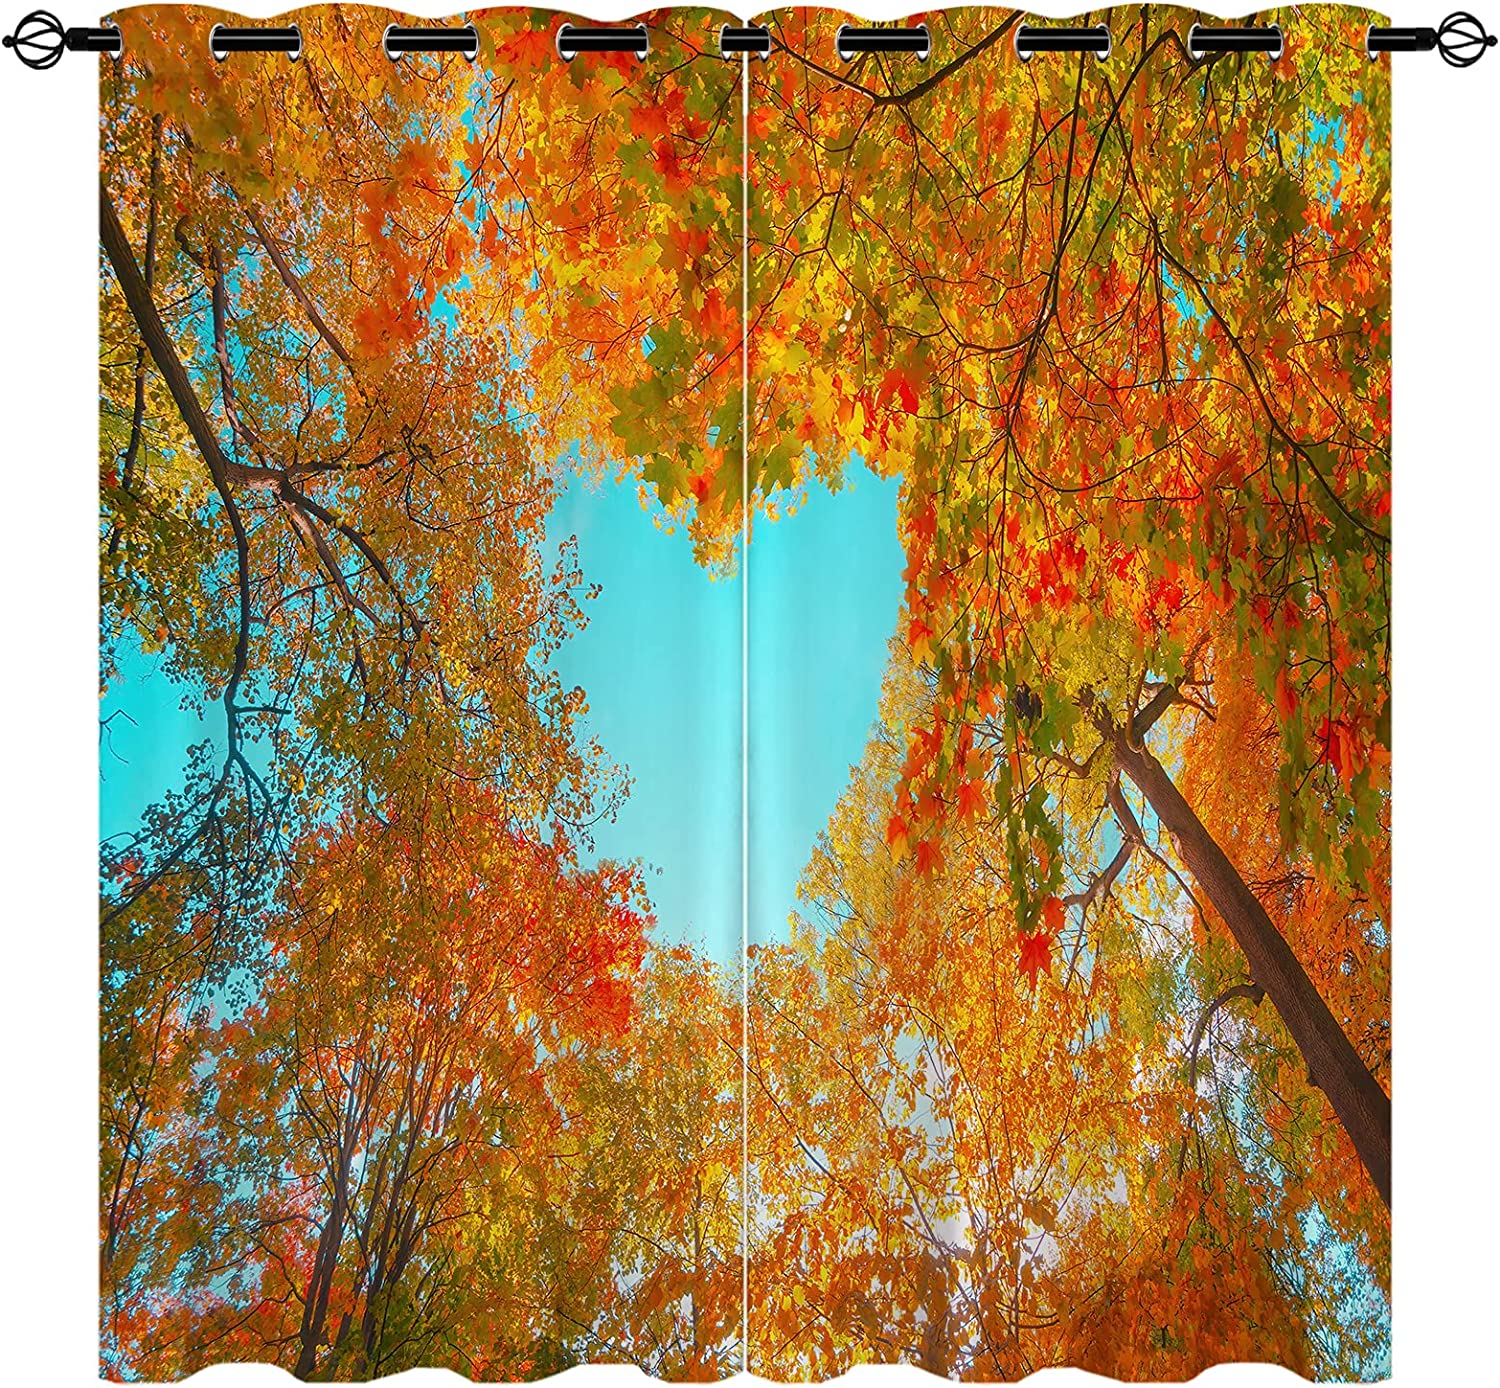 Autumn Forest Max 62% OFF Insulated Max 71% OFF Blackout Curtains Tree Red Color Orange